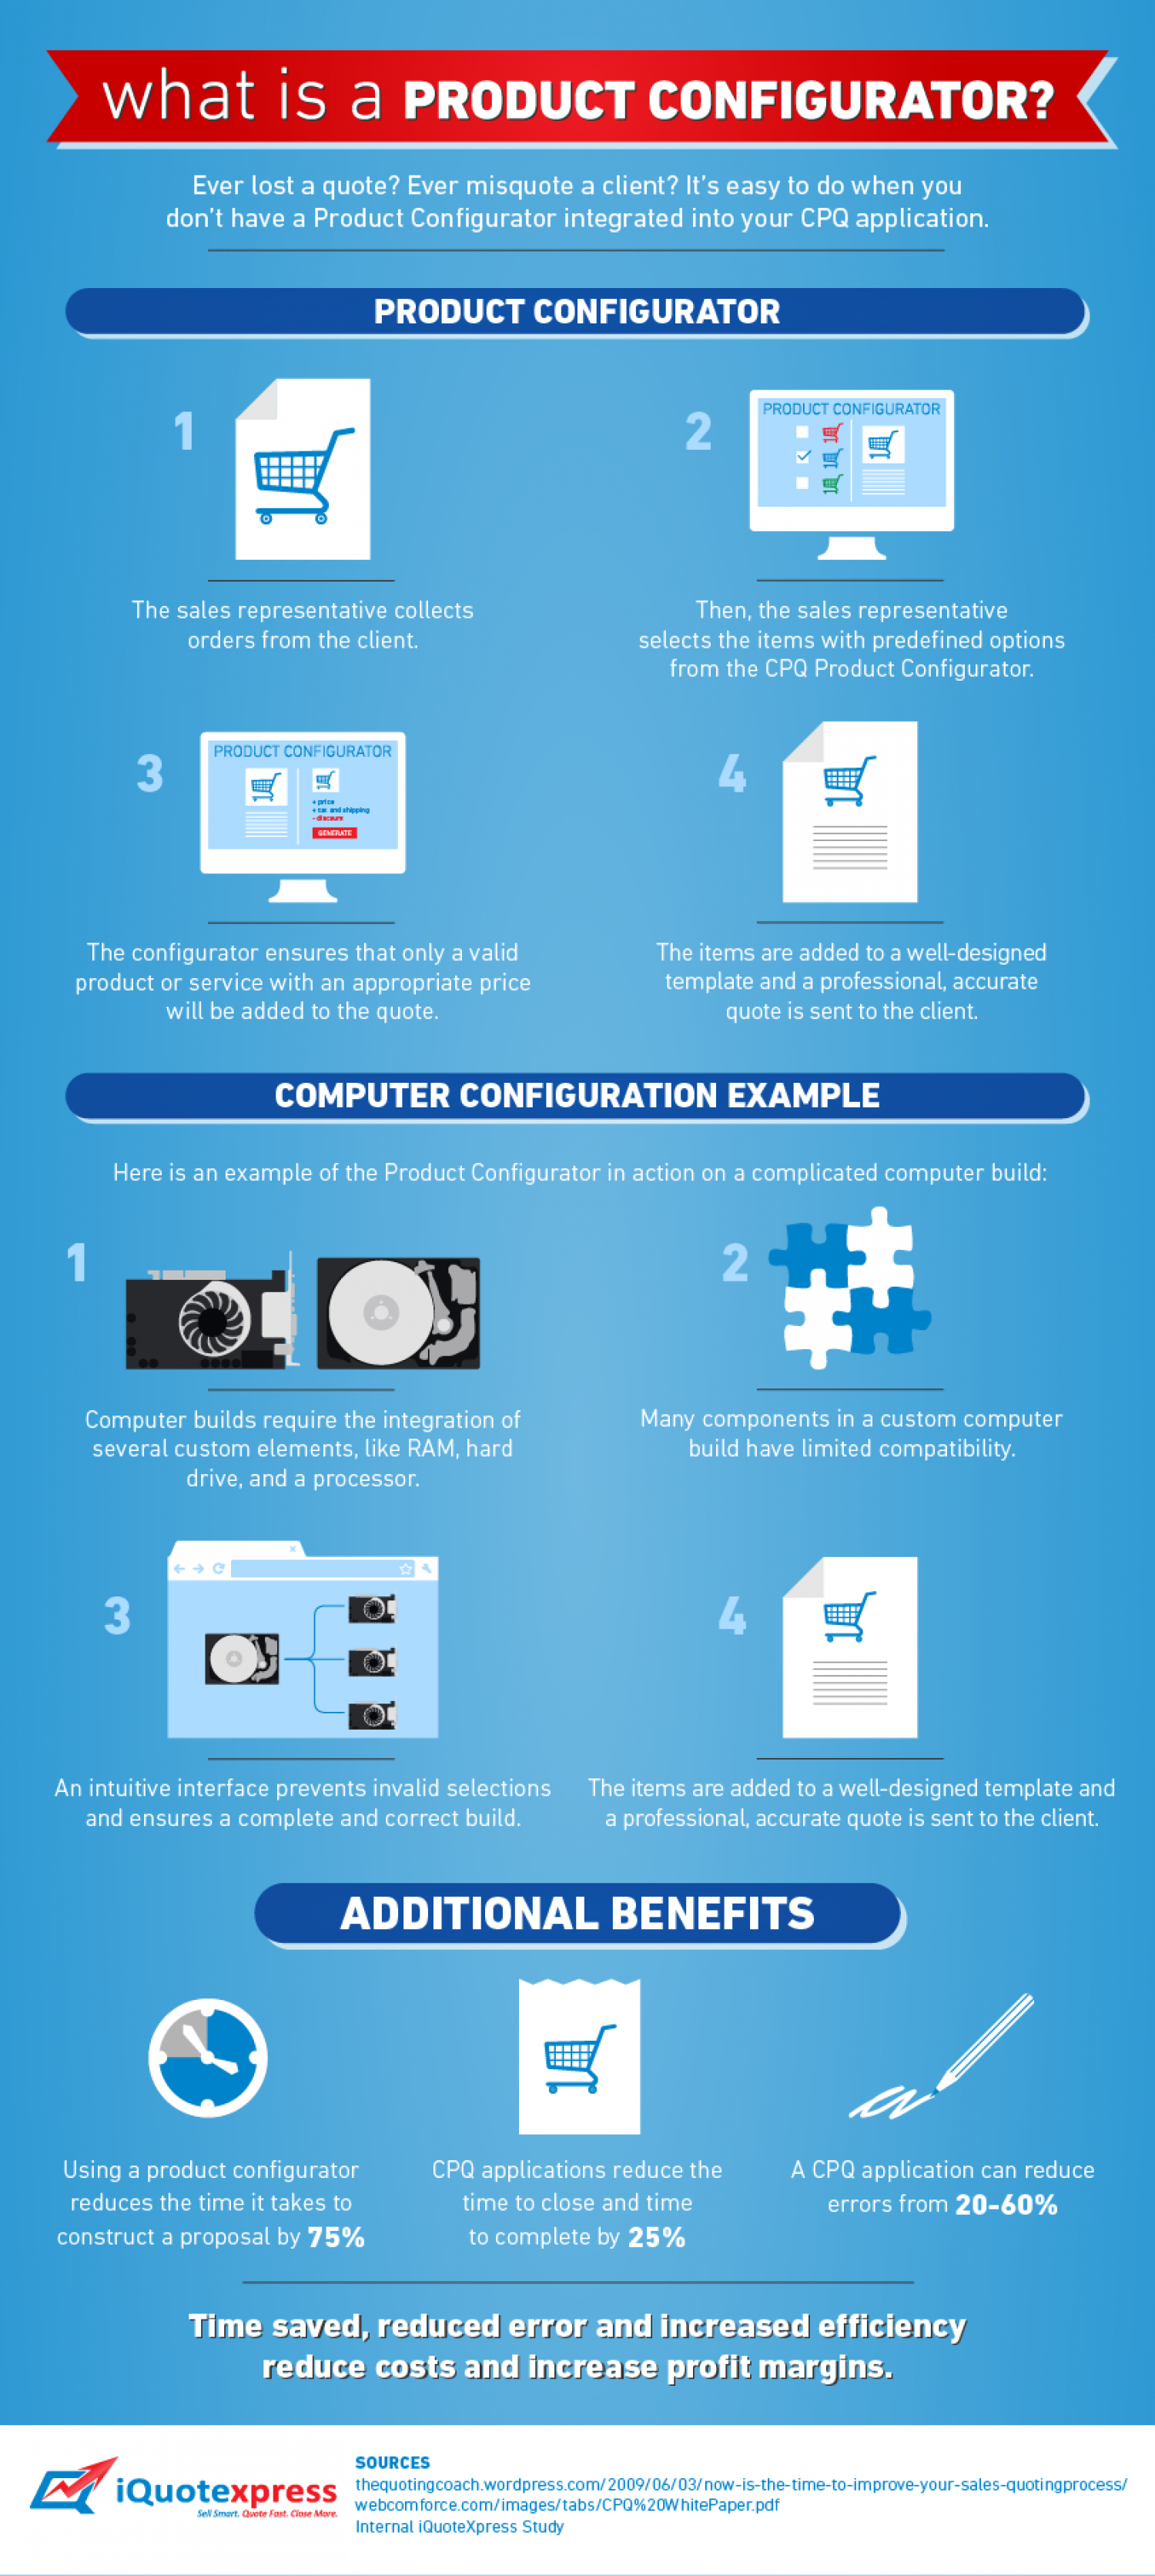 What is a Product Configurator Infographic